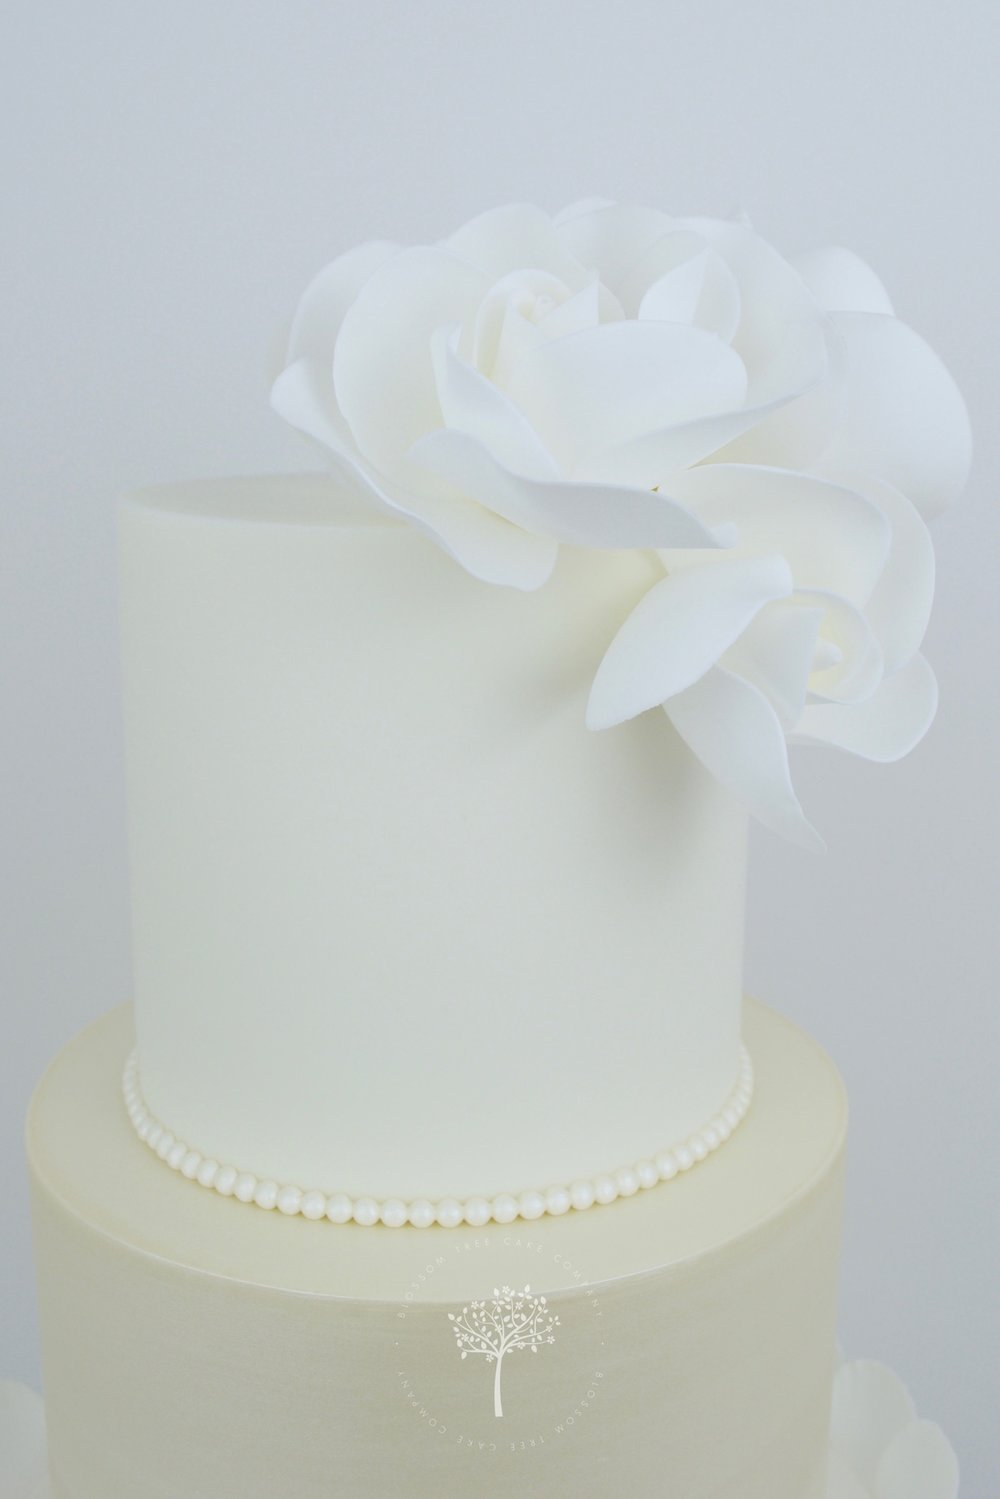 White Roses with Pearls wedding cake by Blossom Tree Cake Company Harrogate North Yorkshire - top sugar roses.jpg